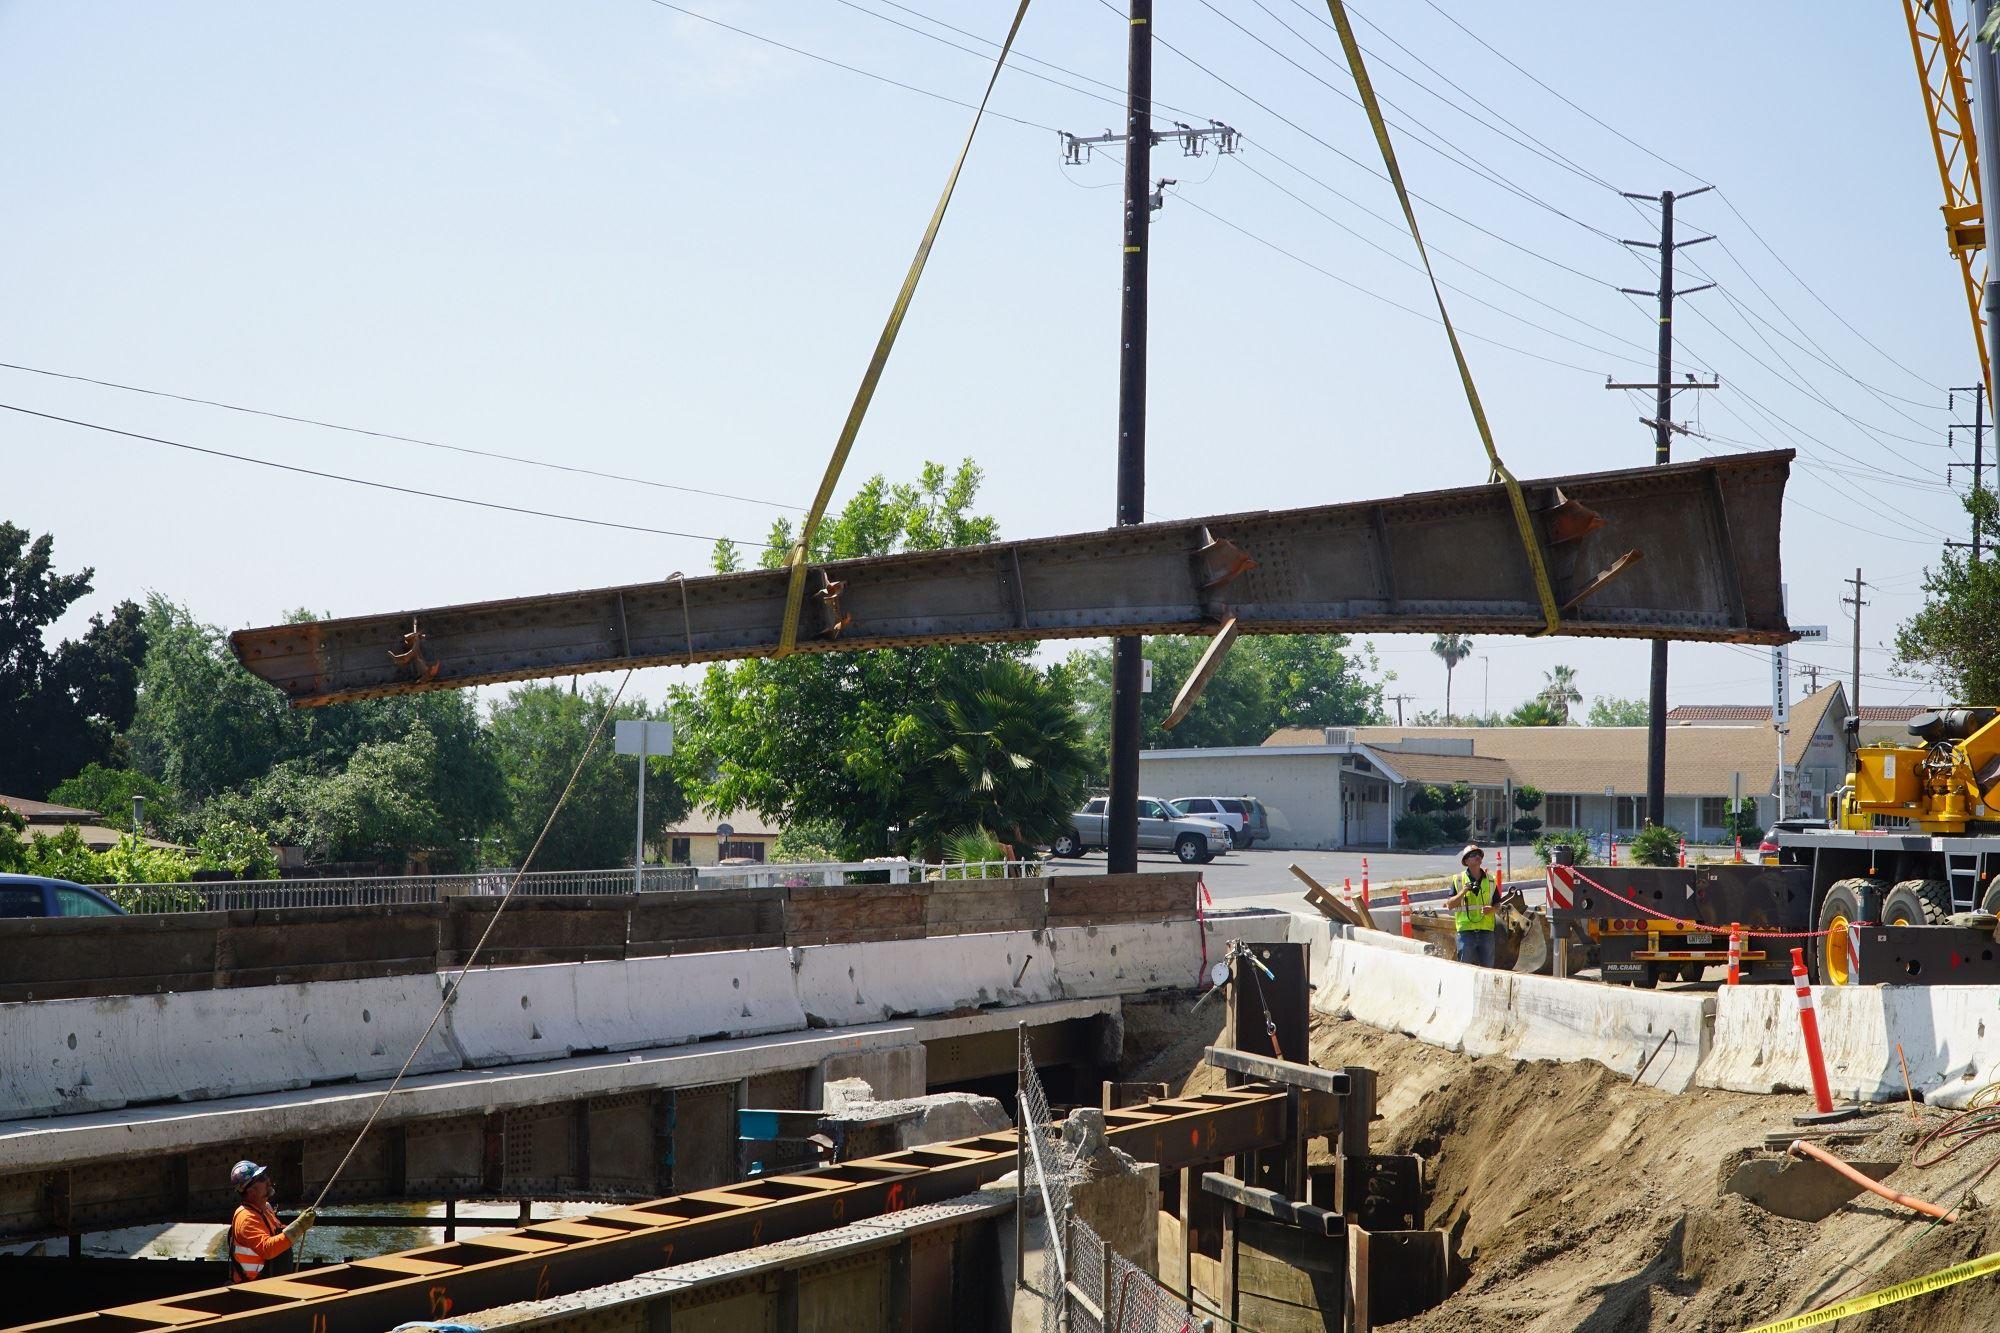 Photos: LA County Public Works removes steel girder at Alhambra Wash Bridge